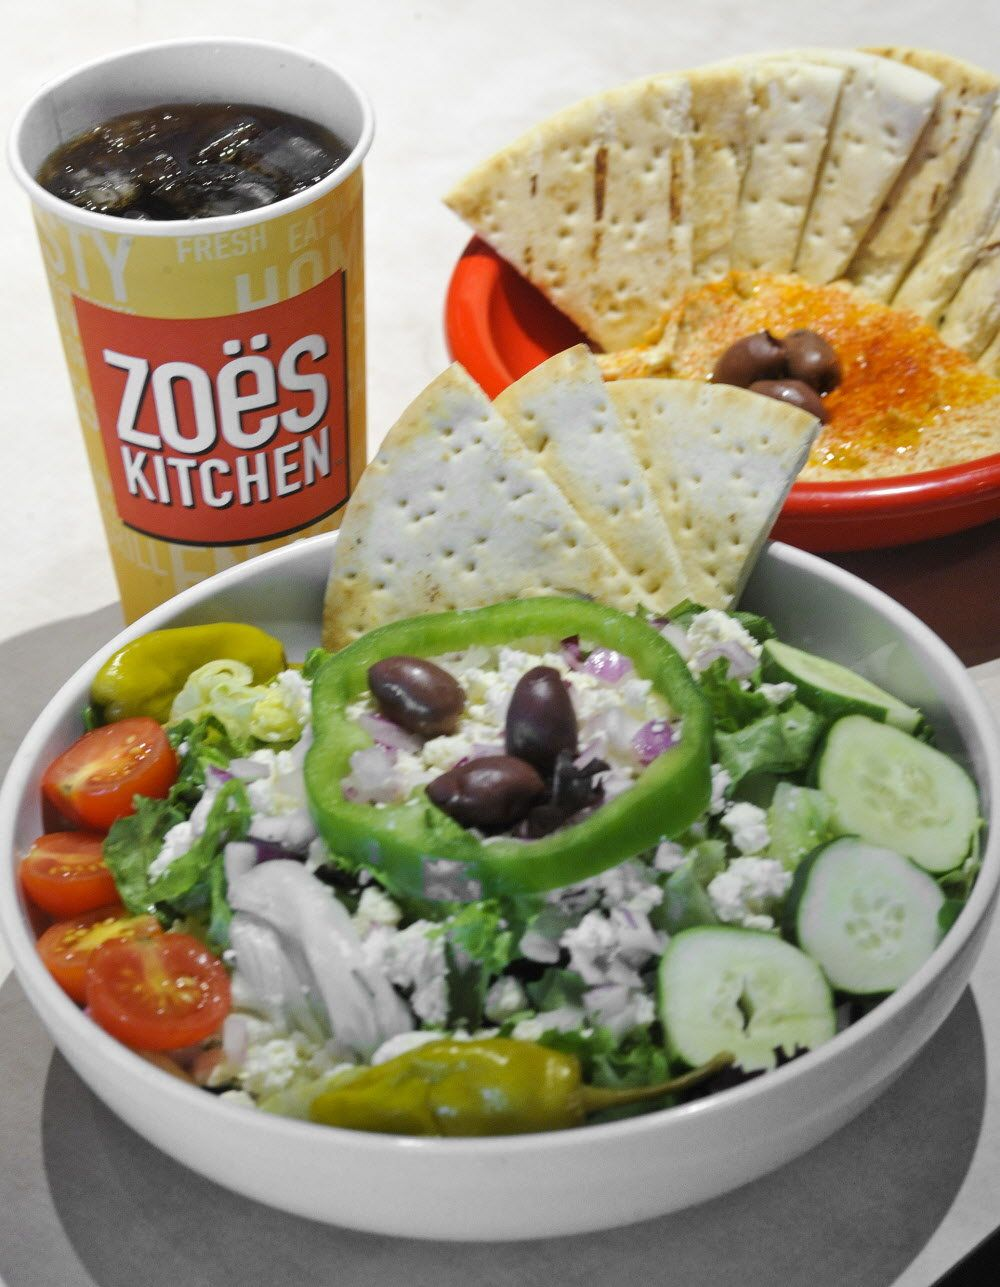 Have You Tried The Chicken Kabobs At Zoes Kitchen Yet